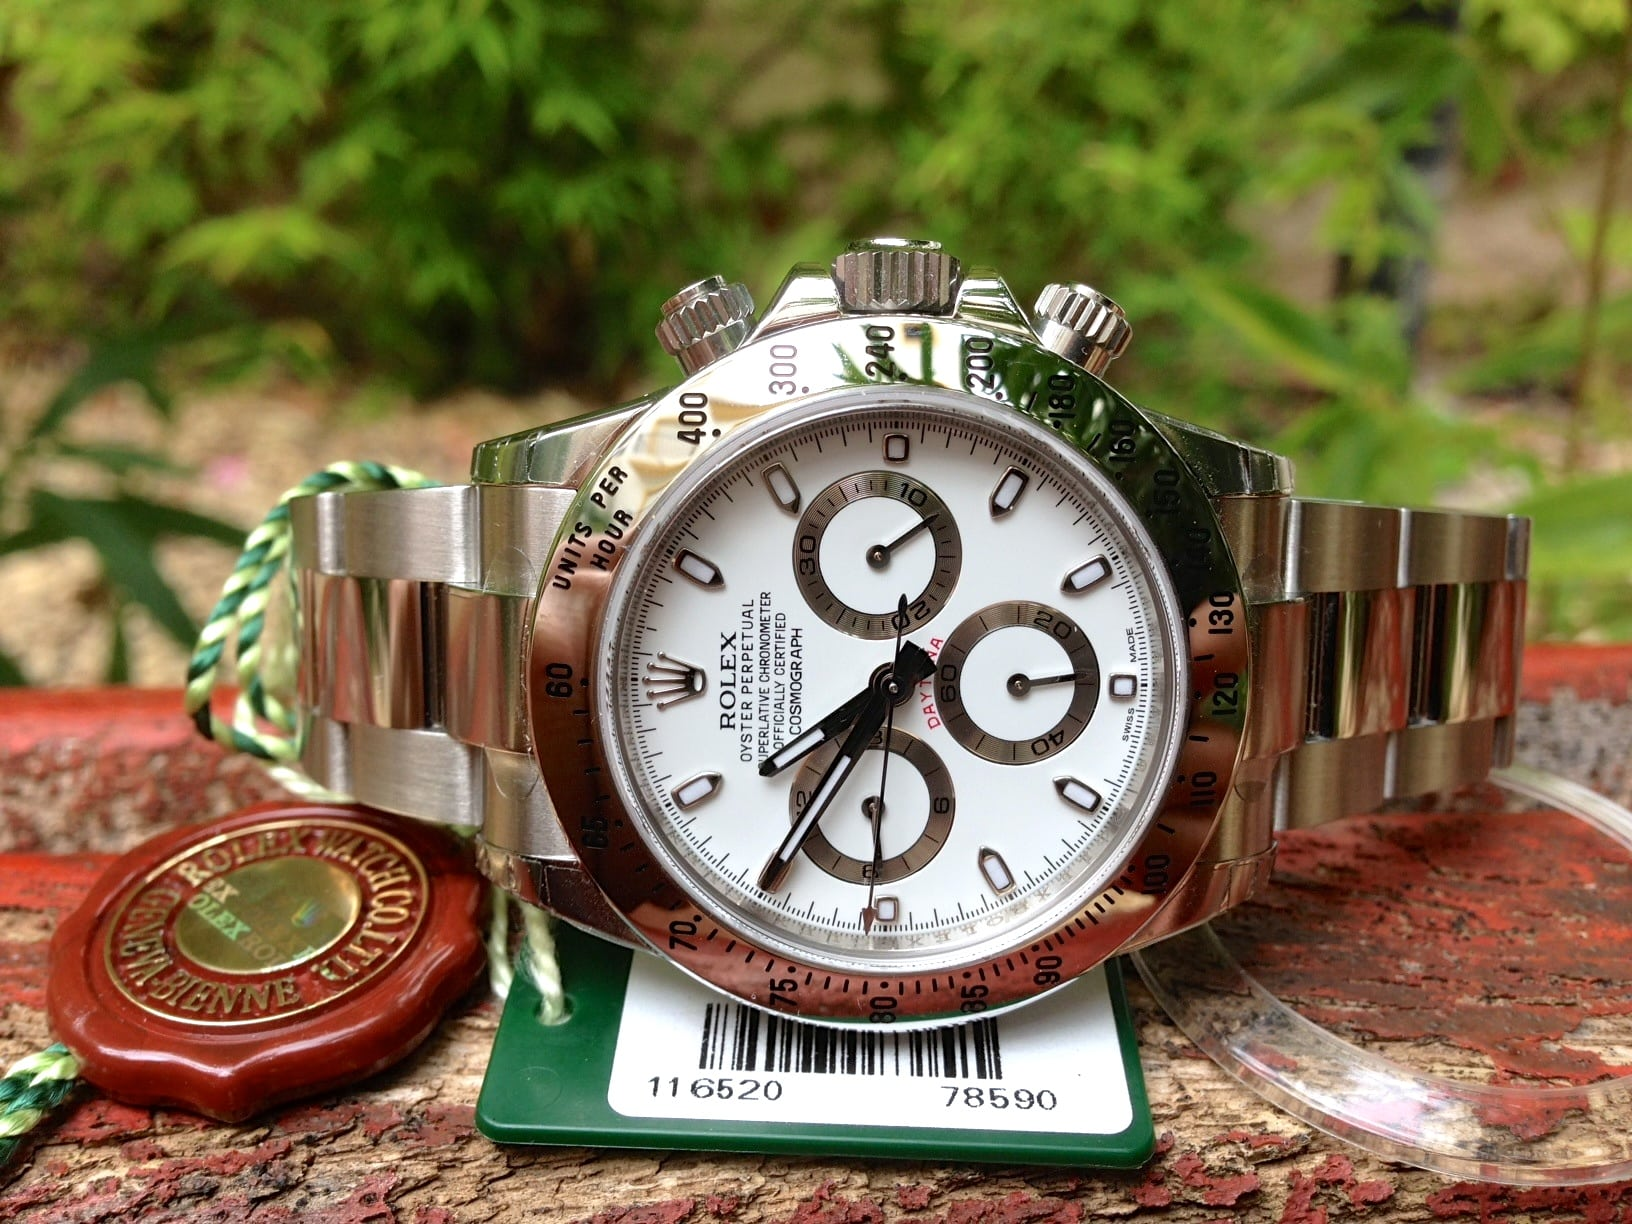 Rolex daytona white dial 116520 New unused with stickers